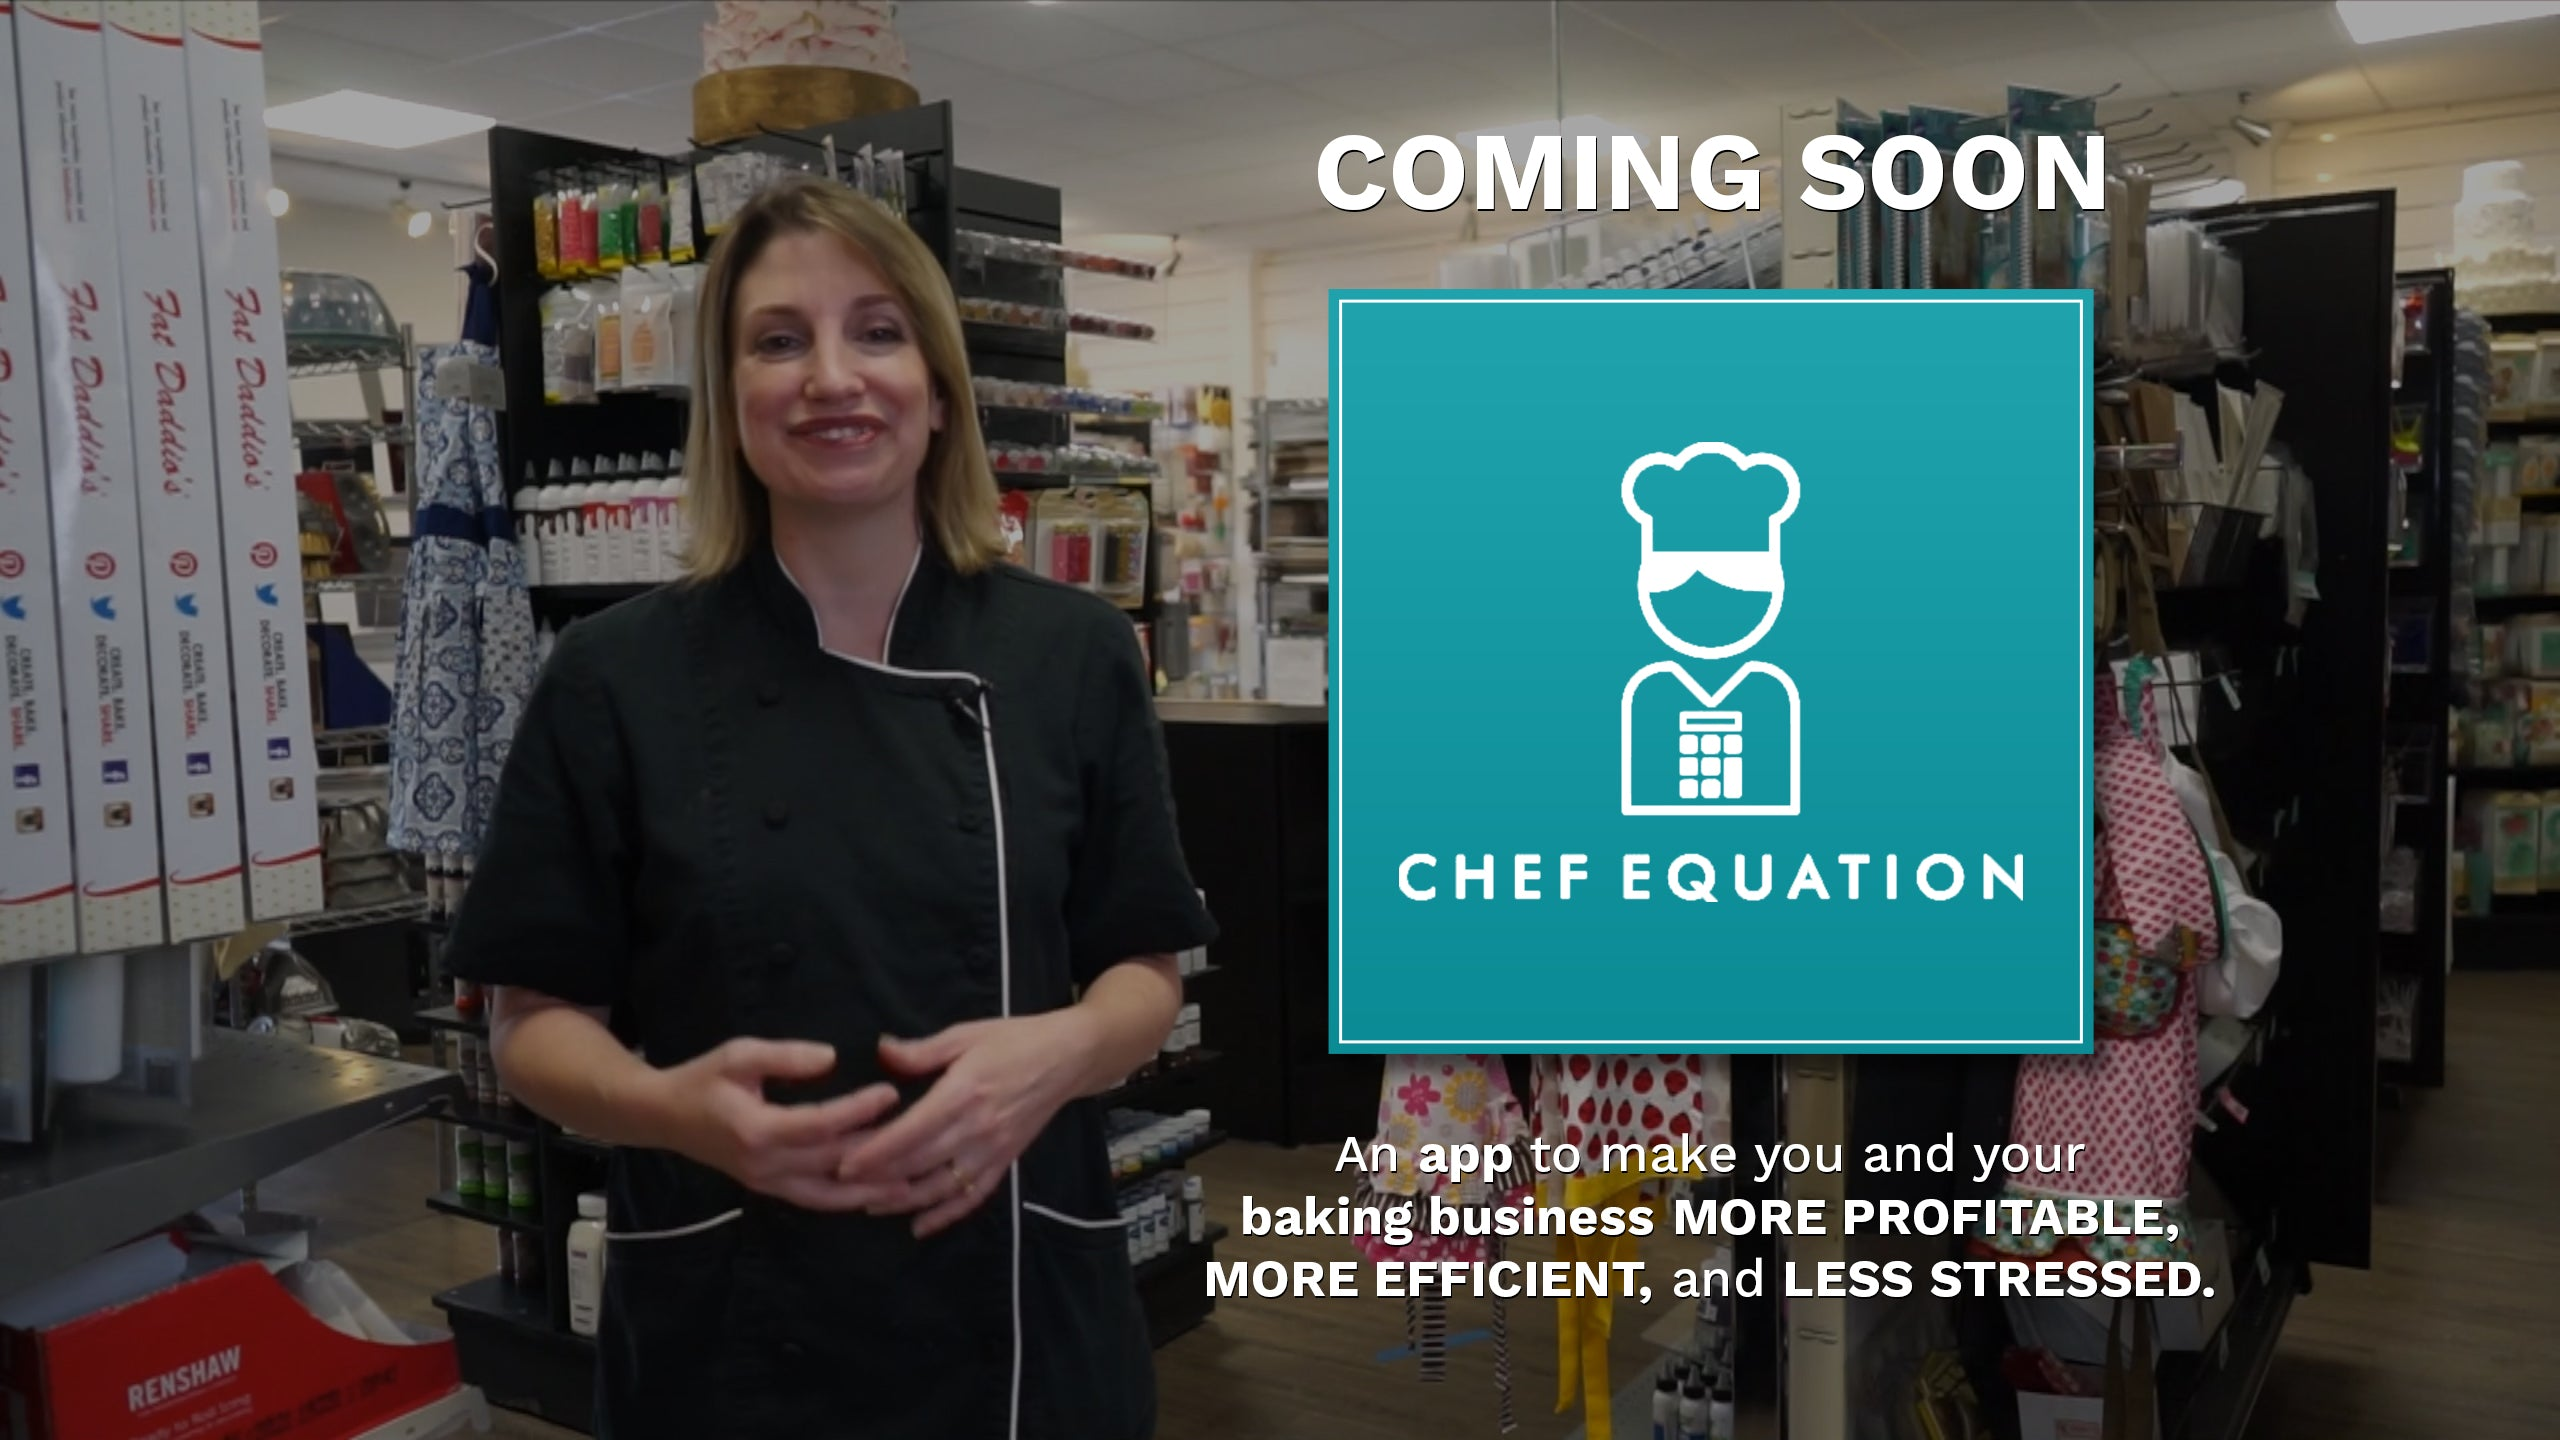 Coming Soon: Chef Equation. An app to make you and your baking business more profitable, more efficient, and less stressful.